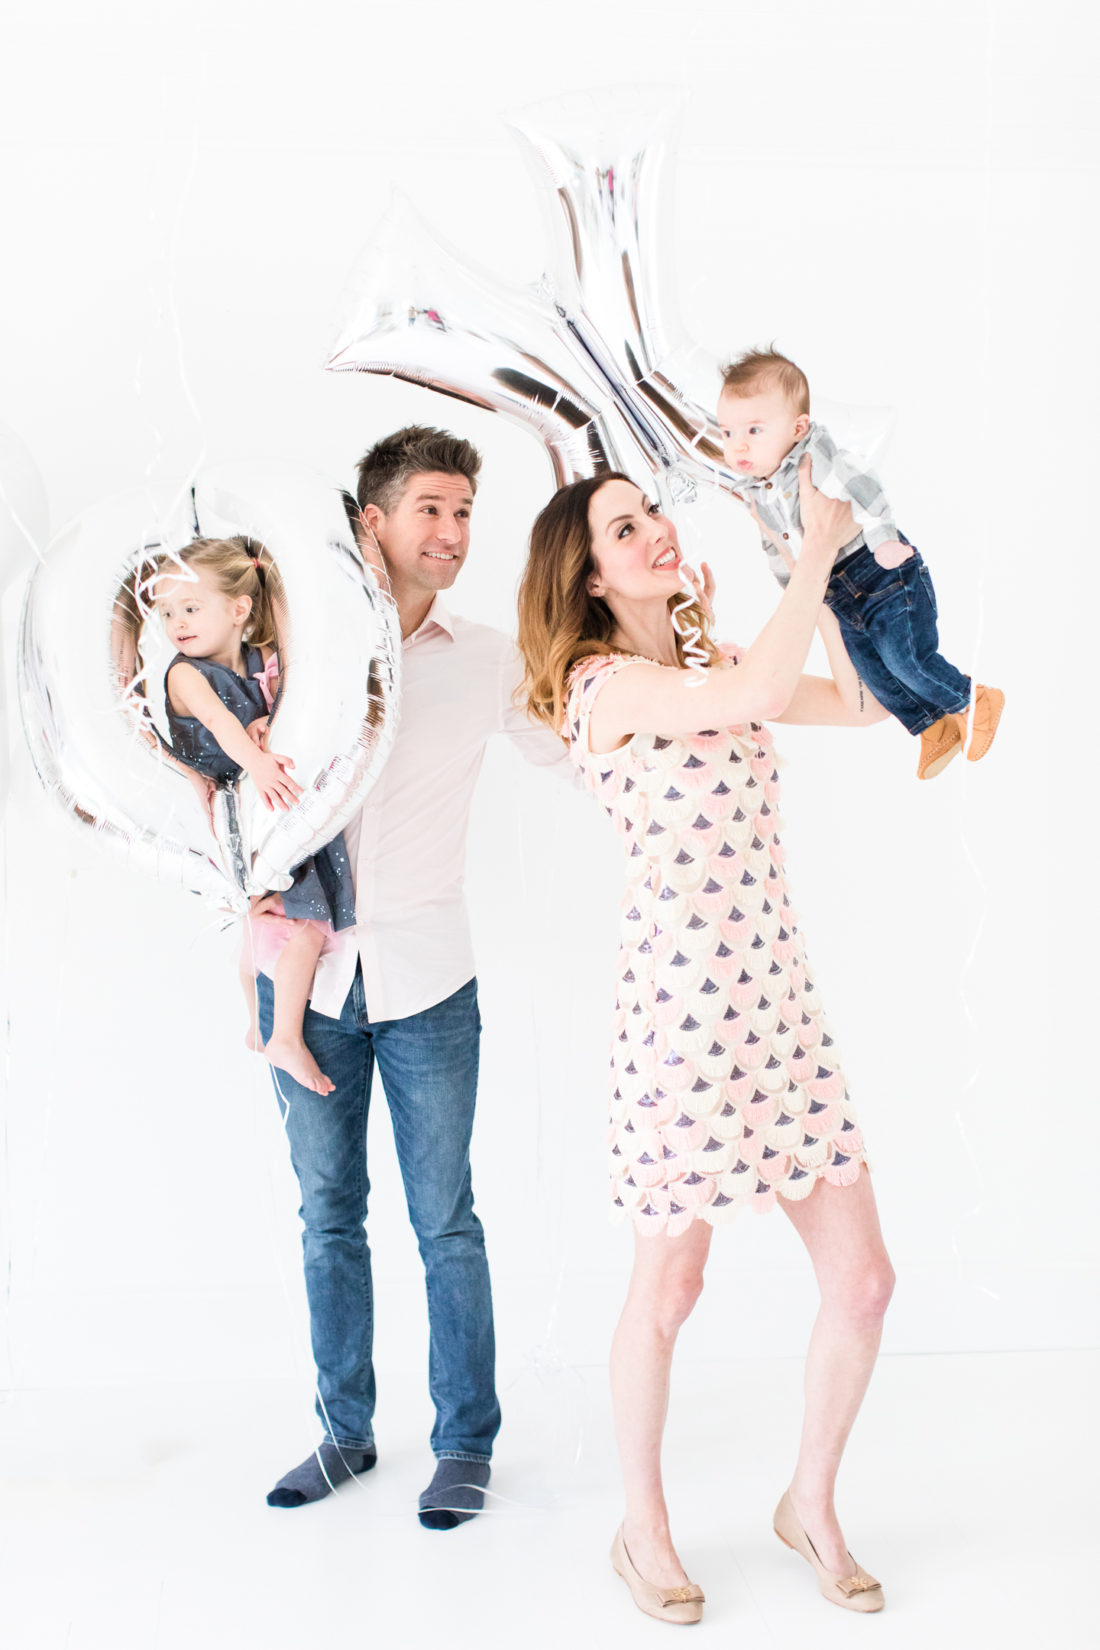 Eva Amurri Martino, Kyle Martino, and their children Marlowe and Major celebrate Valentine's Day at their home in Connecticut